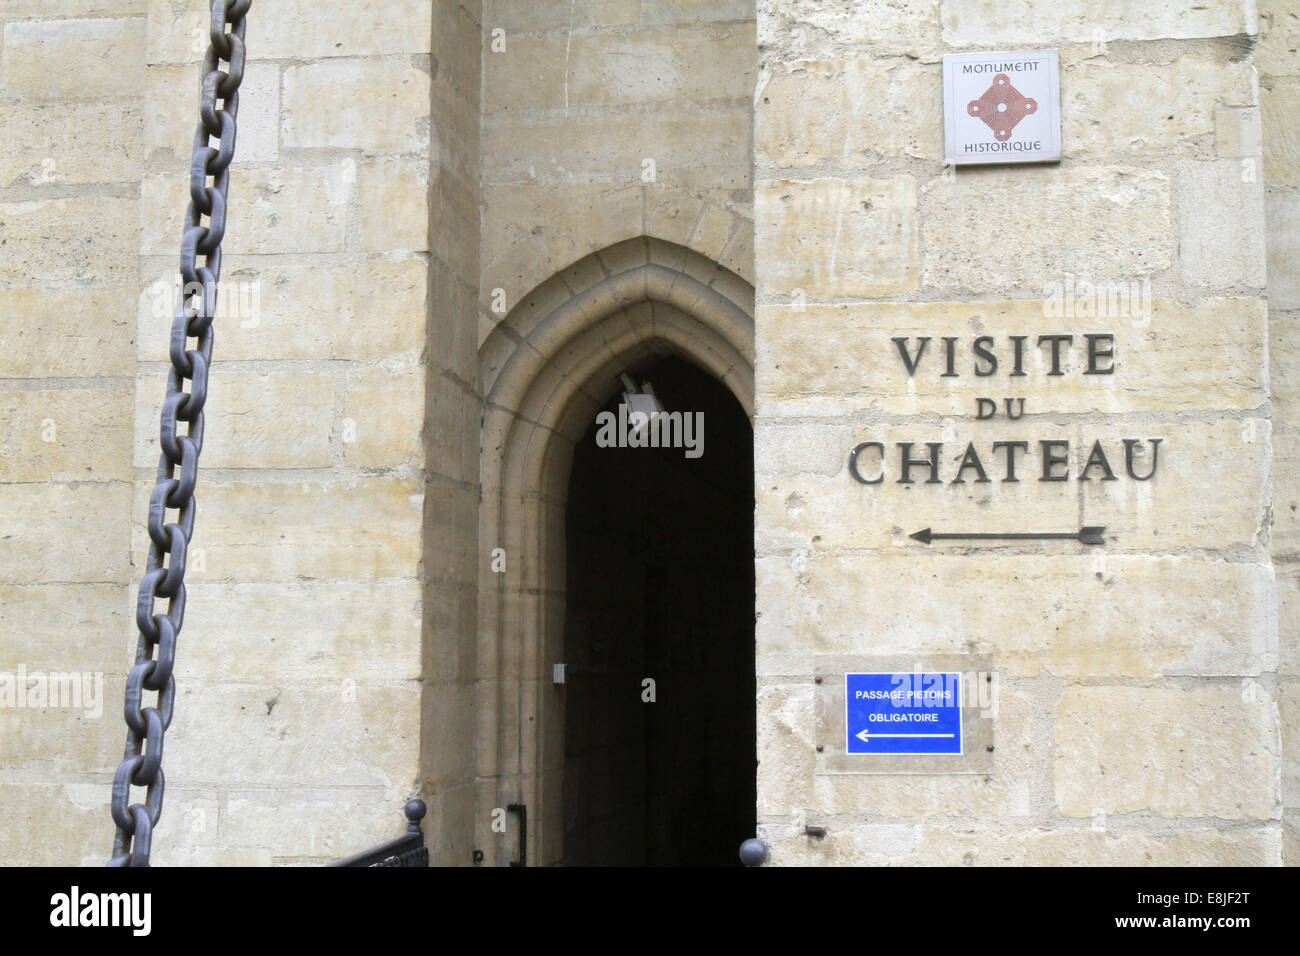 Visit Castle. Vincennes Castle. - Stock Image